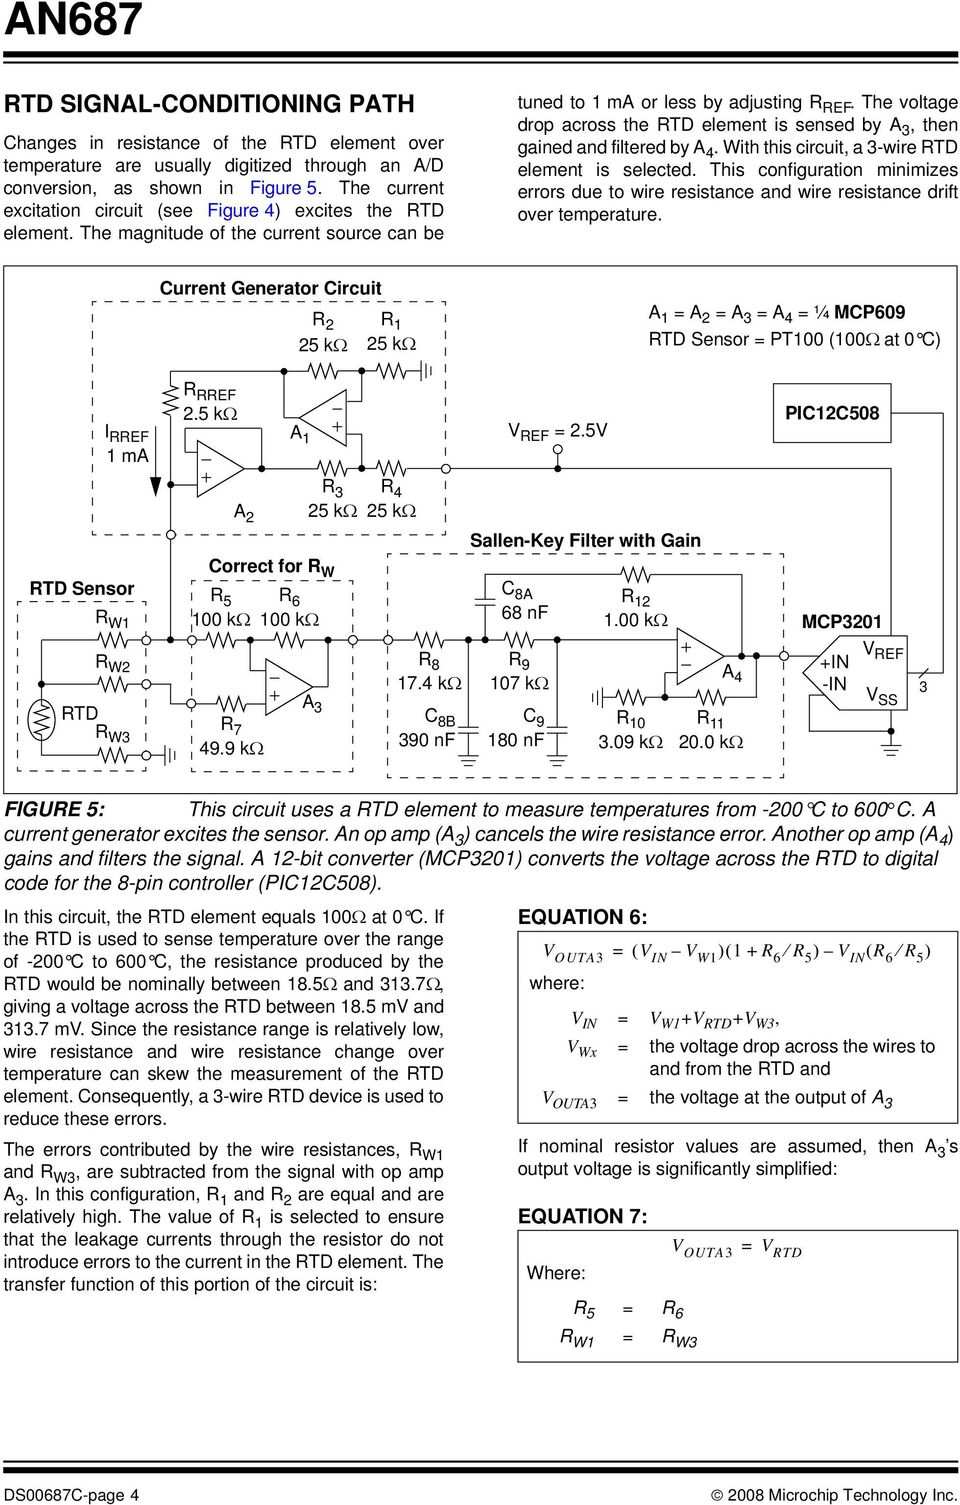 An687 Precision Temperature Sensing With Rtd Circuits Overview Analog Compensation Circuit For Pt100 Sensor The Voltage Drop Across Element Is Sensed By A 3 Then Gained And